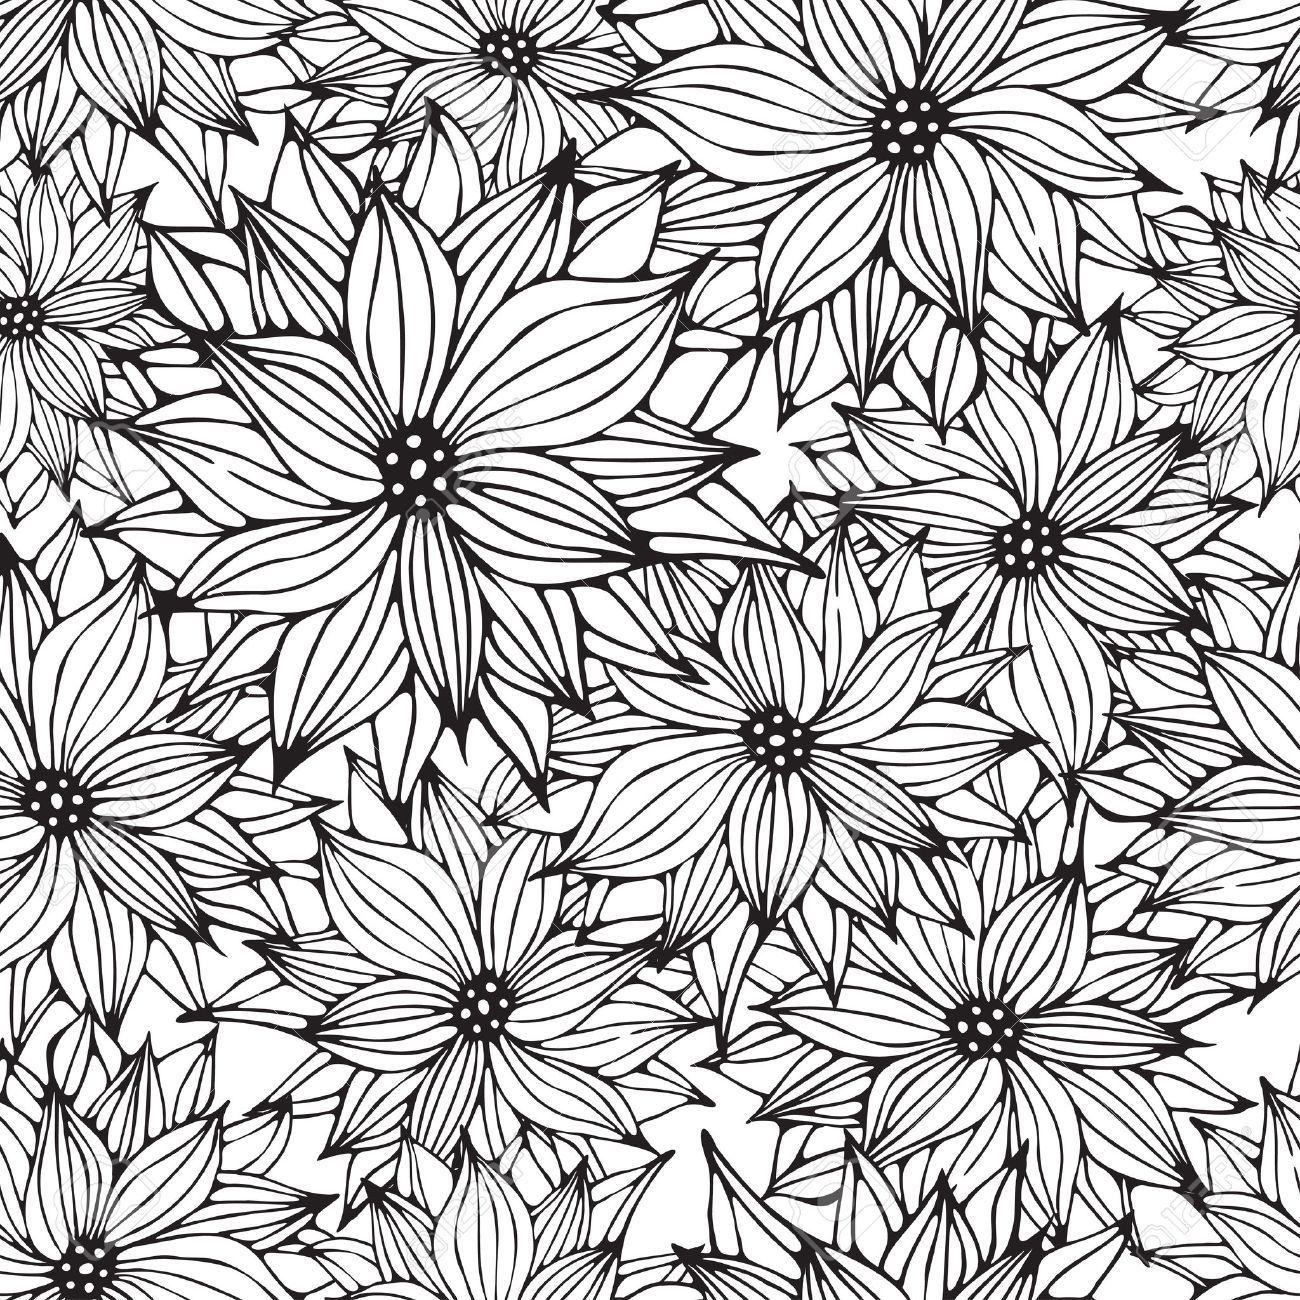 Image Result For Flower Patterns Drawing Flower Pattern Drawing Floral Background Hand Drawn Pattern